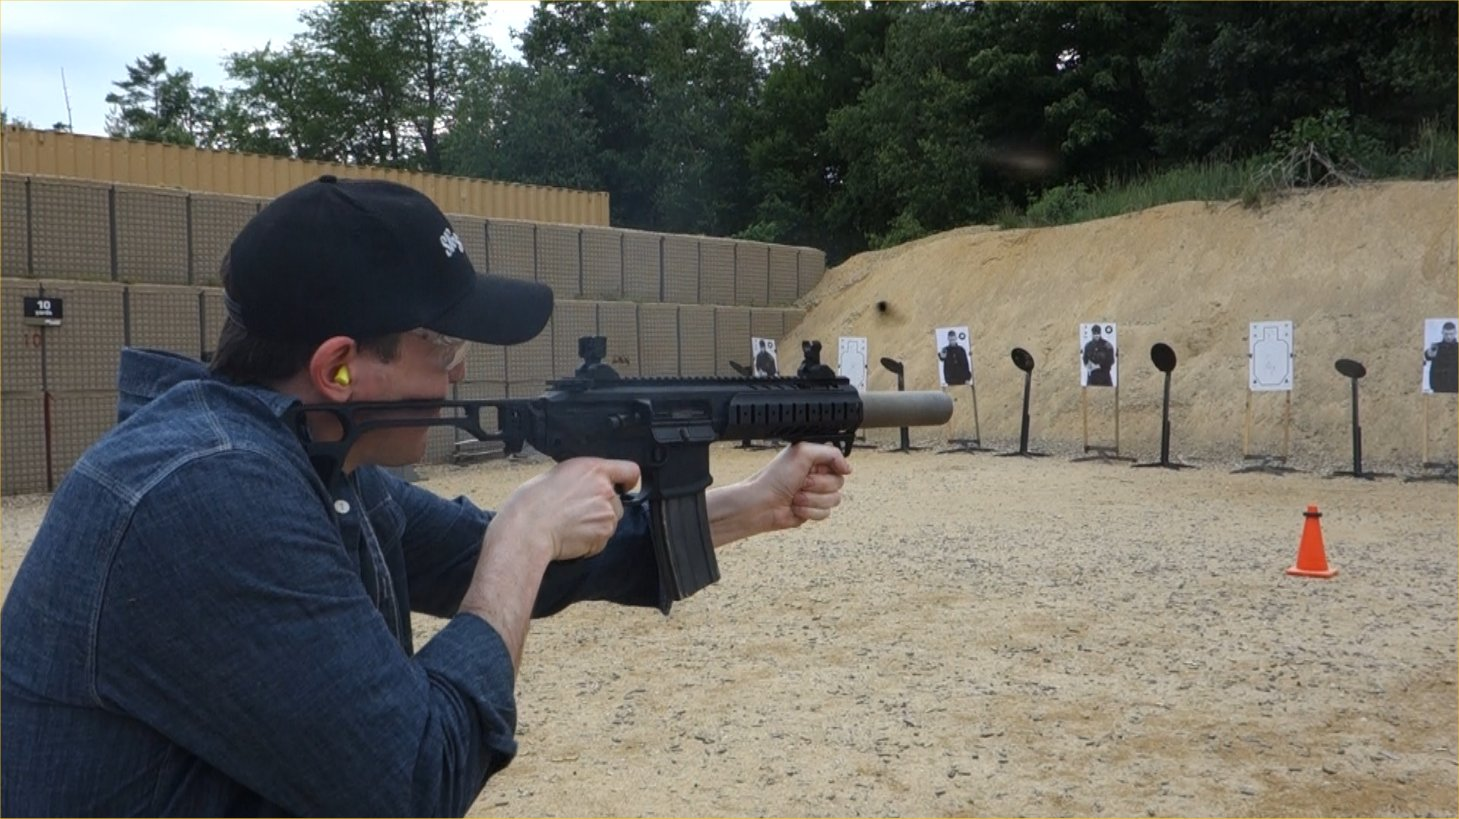 SIG SAUER SIG MCX Multi Caliber AR Assault Rifle Carbine SBR 300 Blackout 300BLK Suppressed David Crane Firing on Full Auto SIG SAUER New Media Writers Event DefenseReview.com DR 1 SIG MCX LVAW (Low Visibility Assault Weapon) Black Mamba Suppressed 300 Blackout (300BLK) Piston AR Assault SBR/PDW (Short Barreled Rifle/Personal Defense Weapon) Fired on Full Auto and Semi Auto with Subsonic and Supersonic Ammo During SIG SAUER New Media Writers Event (Video!)